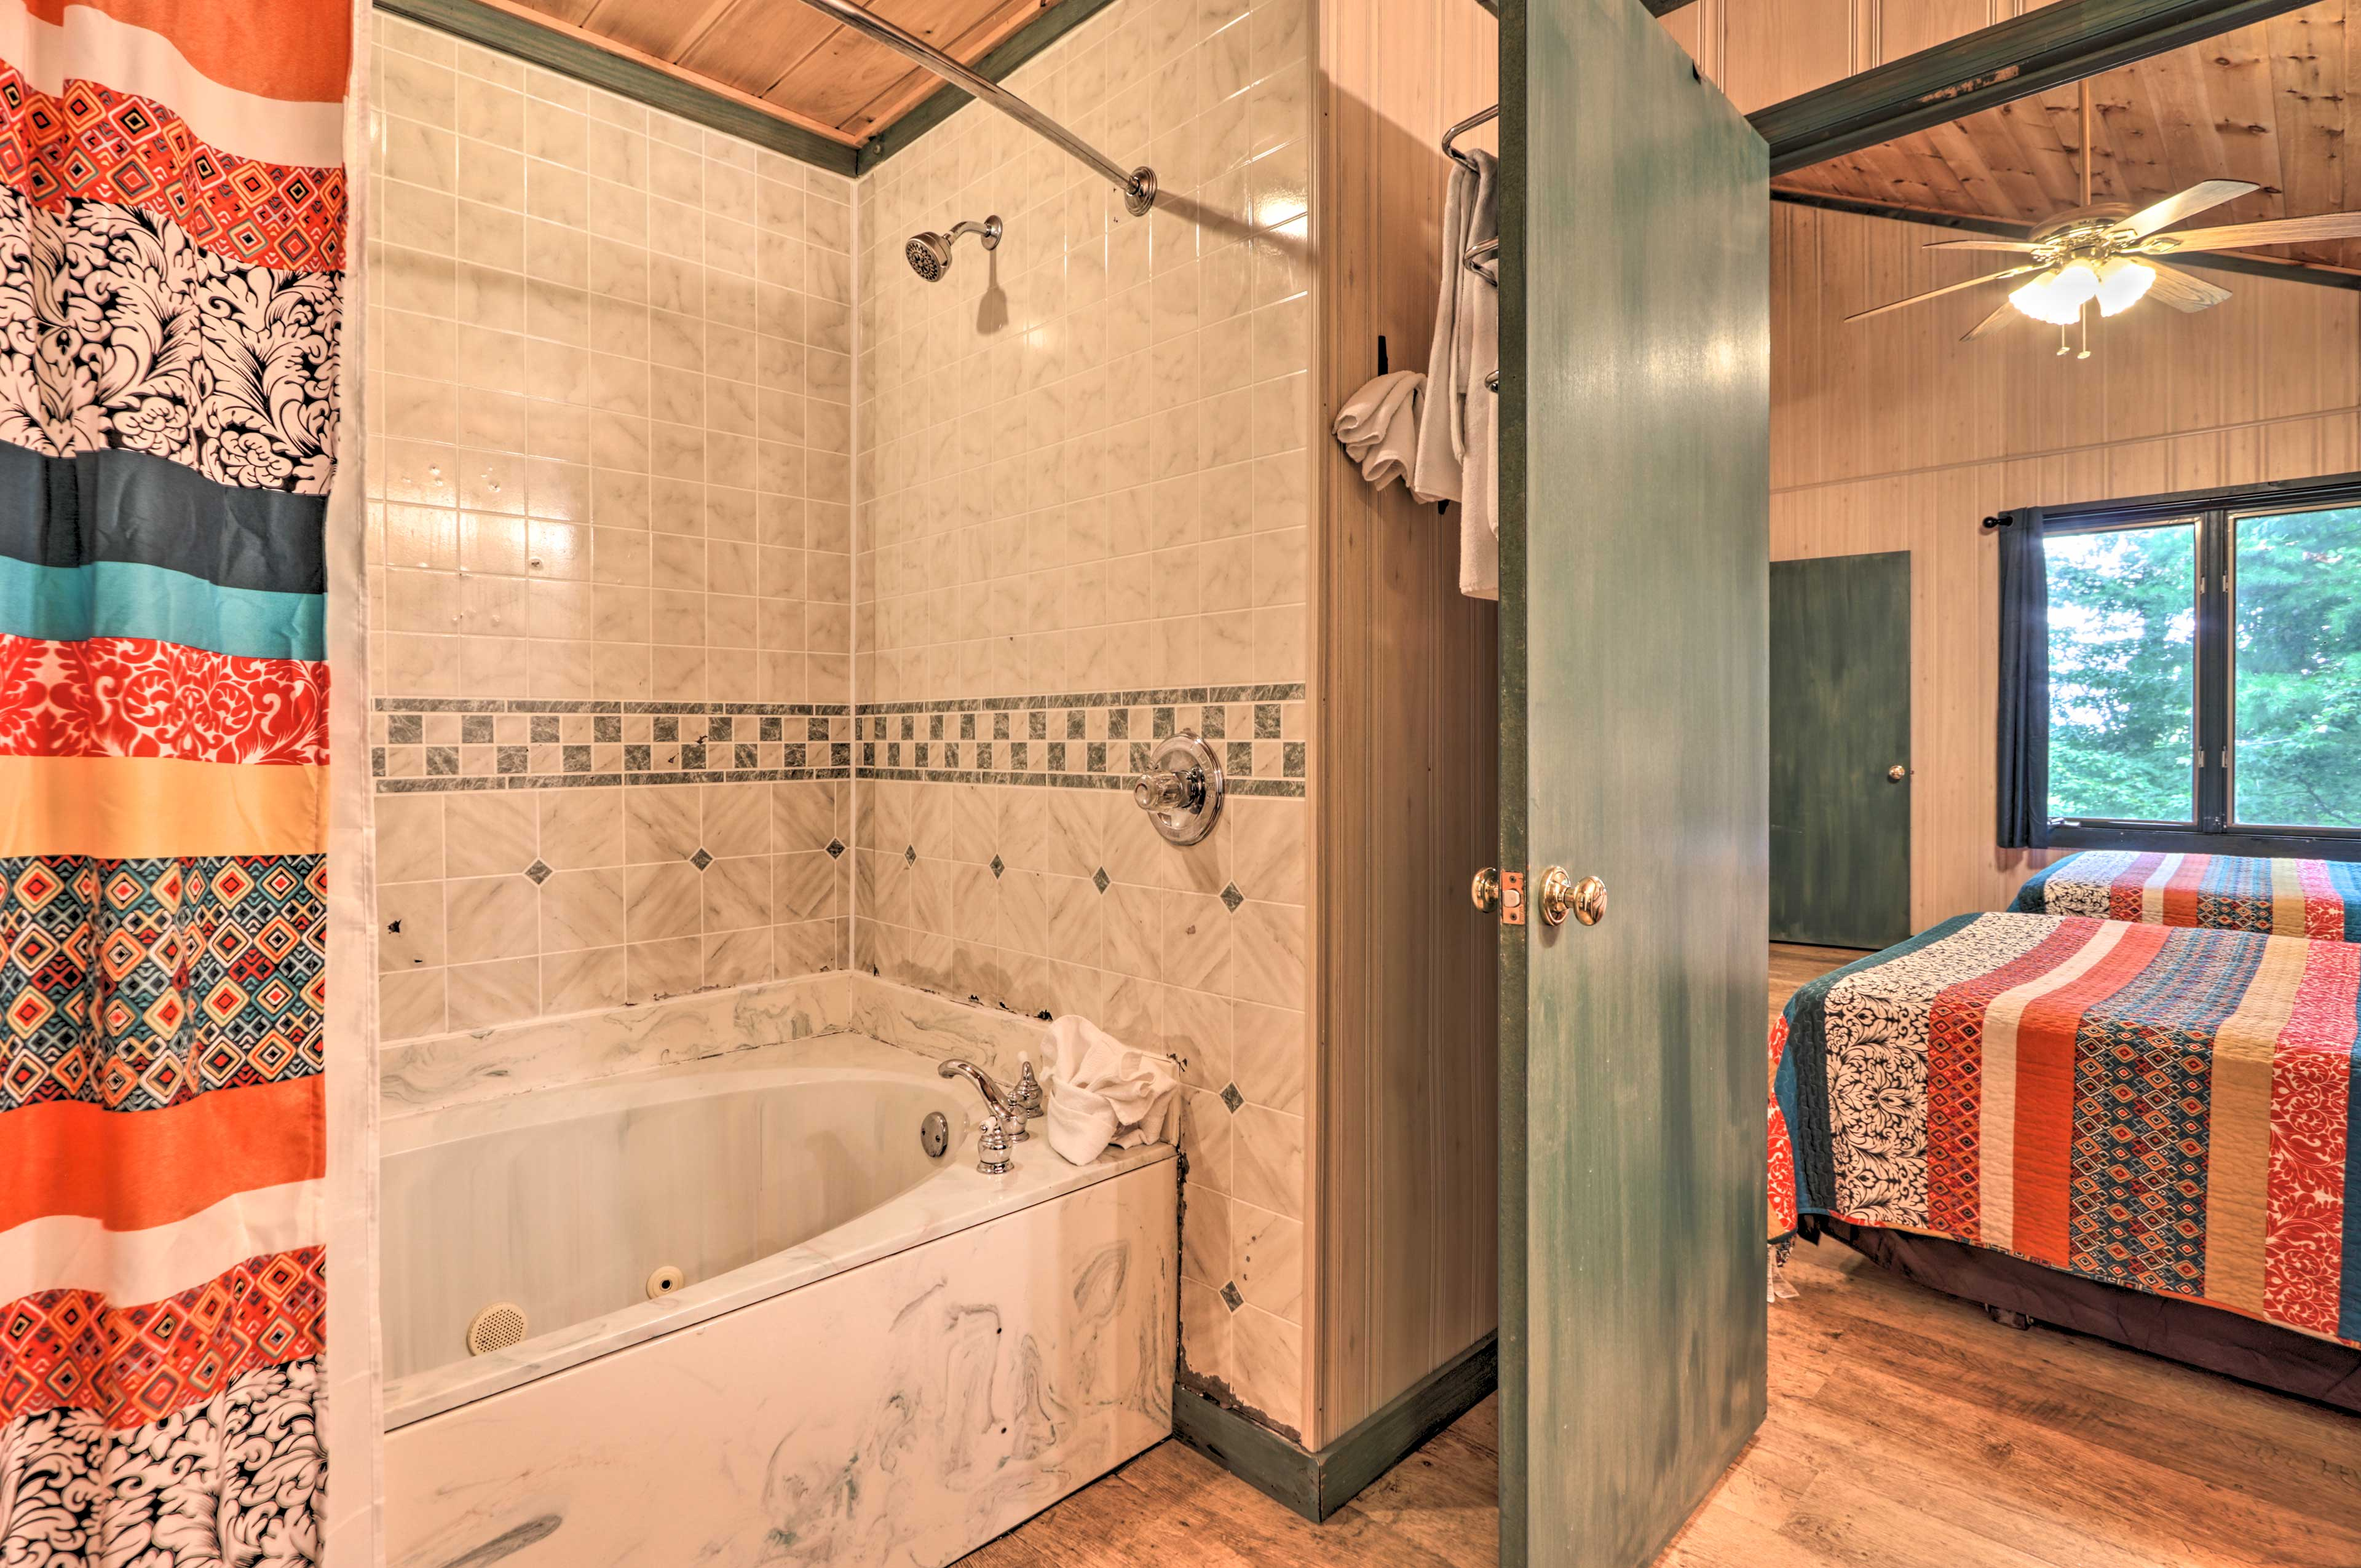 You'll love soaking in the inviting tub.